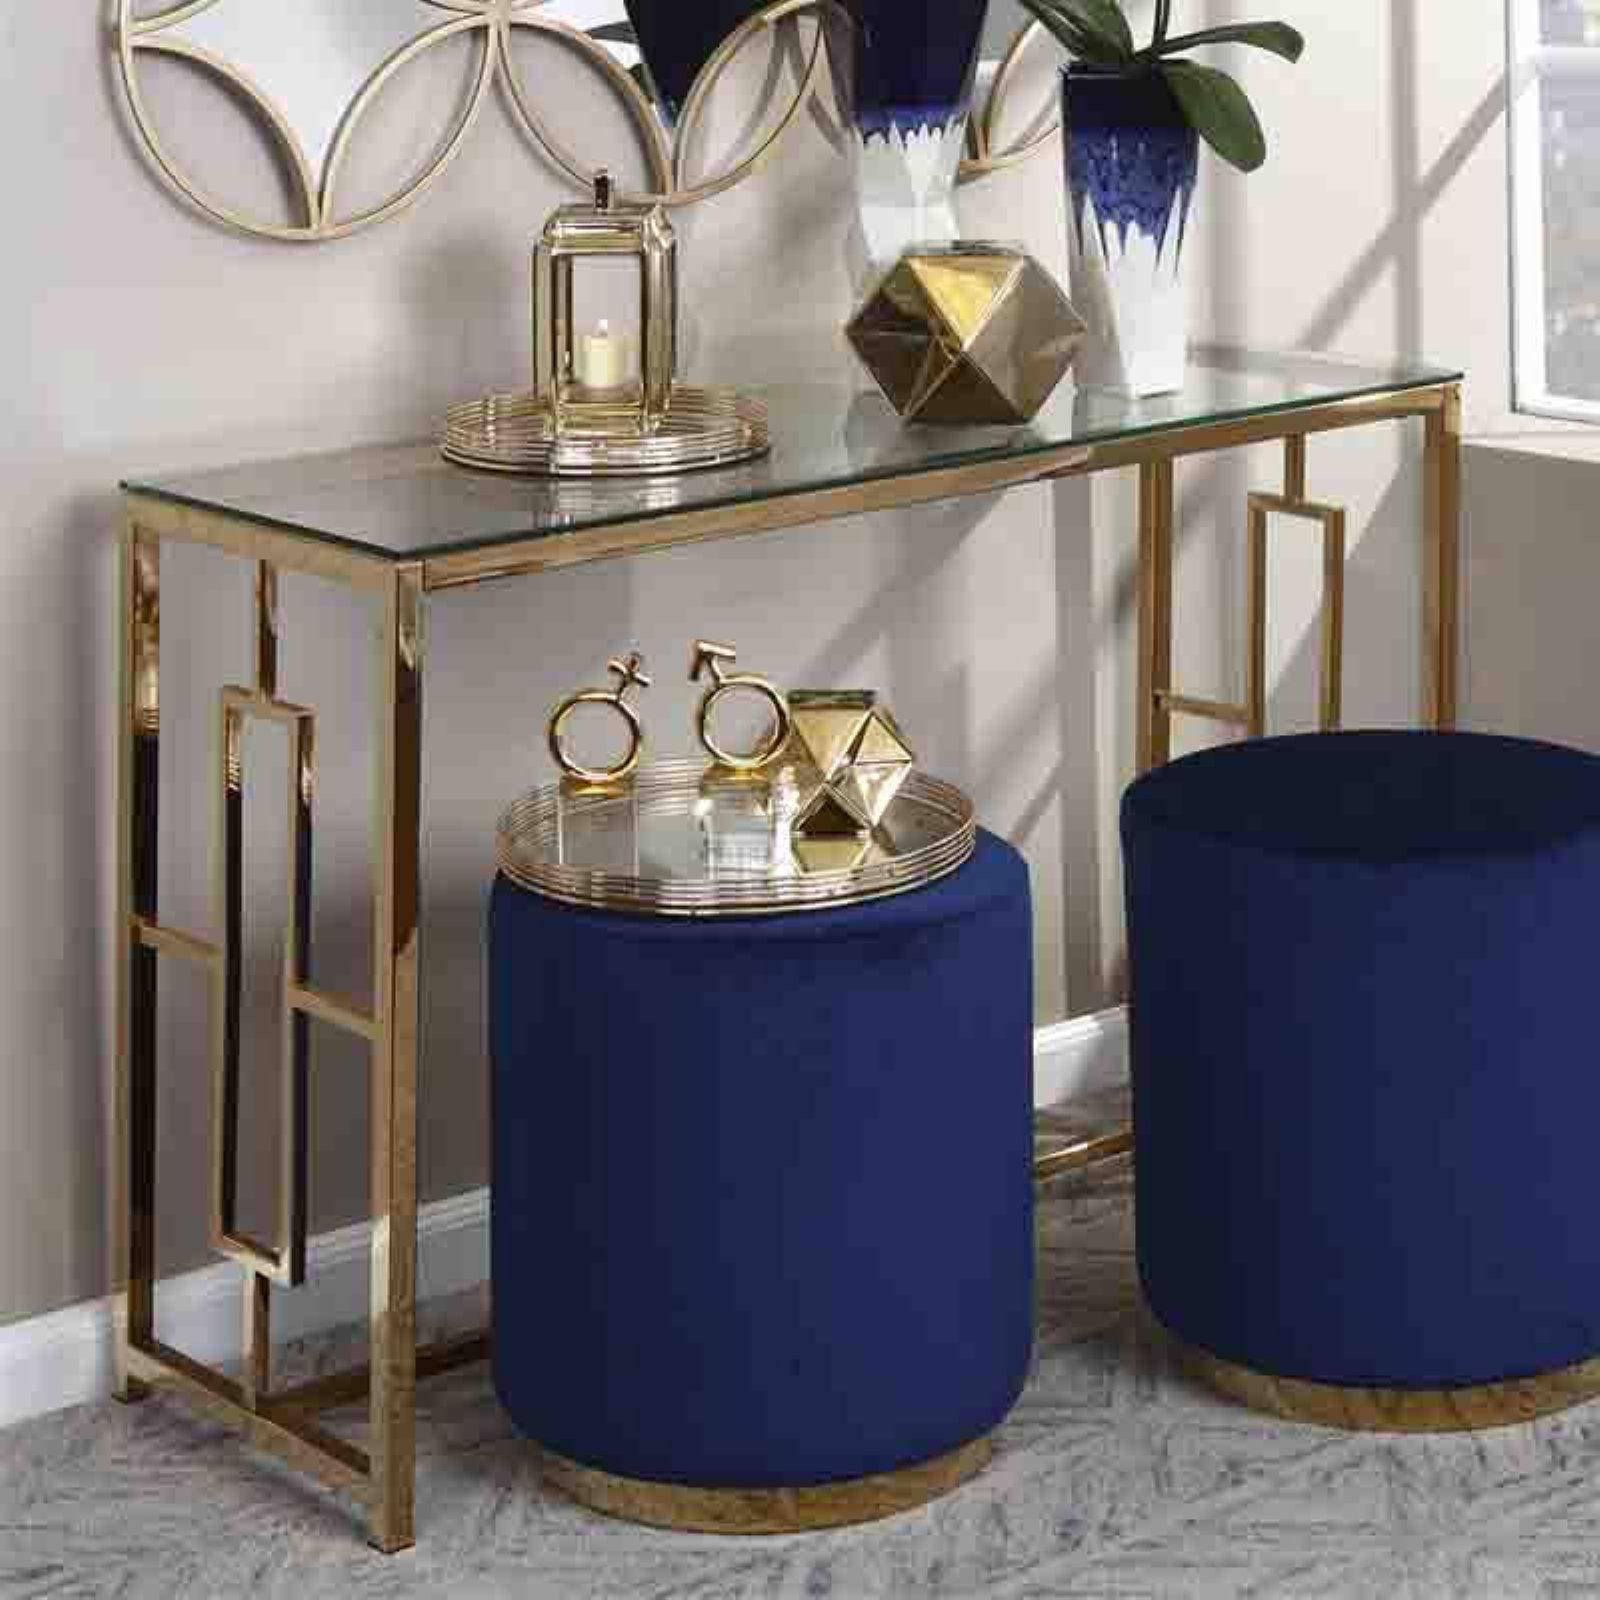 Sagebrook Home Gold Metal Console Table Metal Console Table Blue Living Room Decor Console Table Decorating Gold metal console table